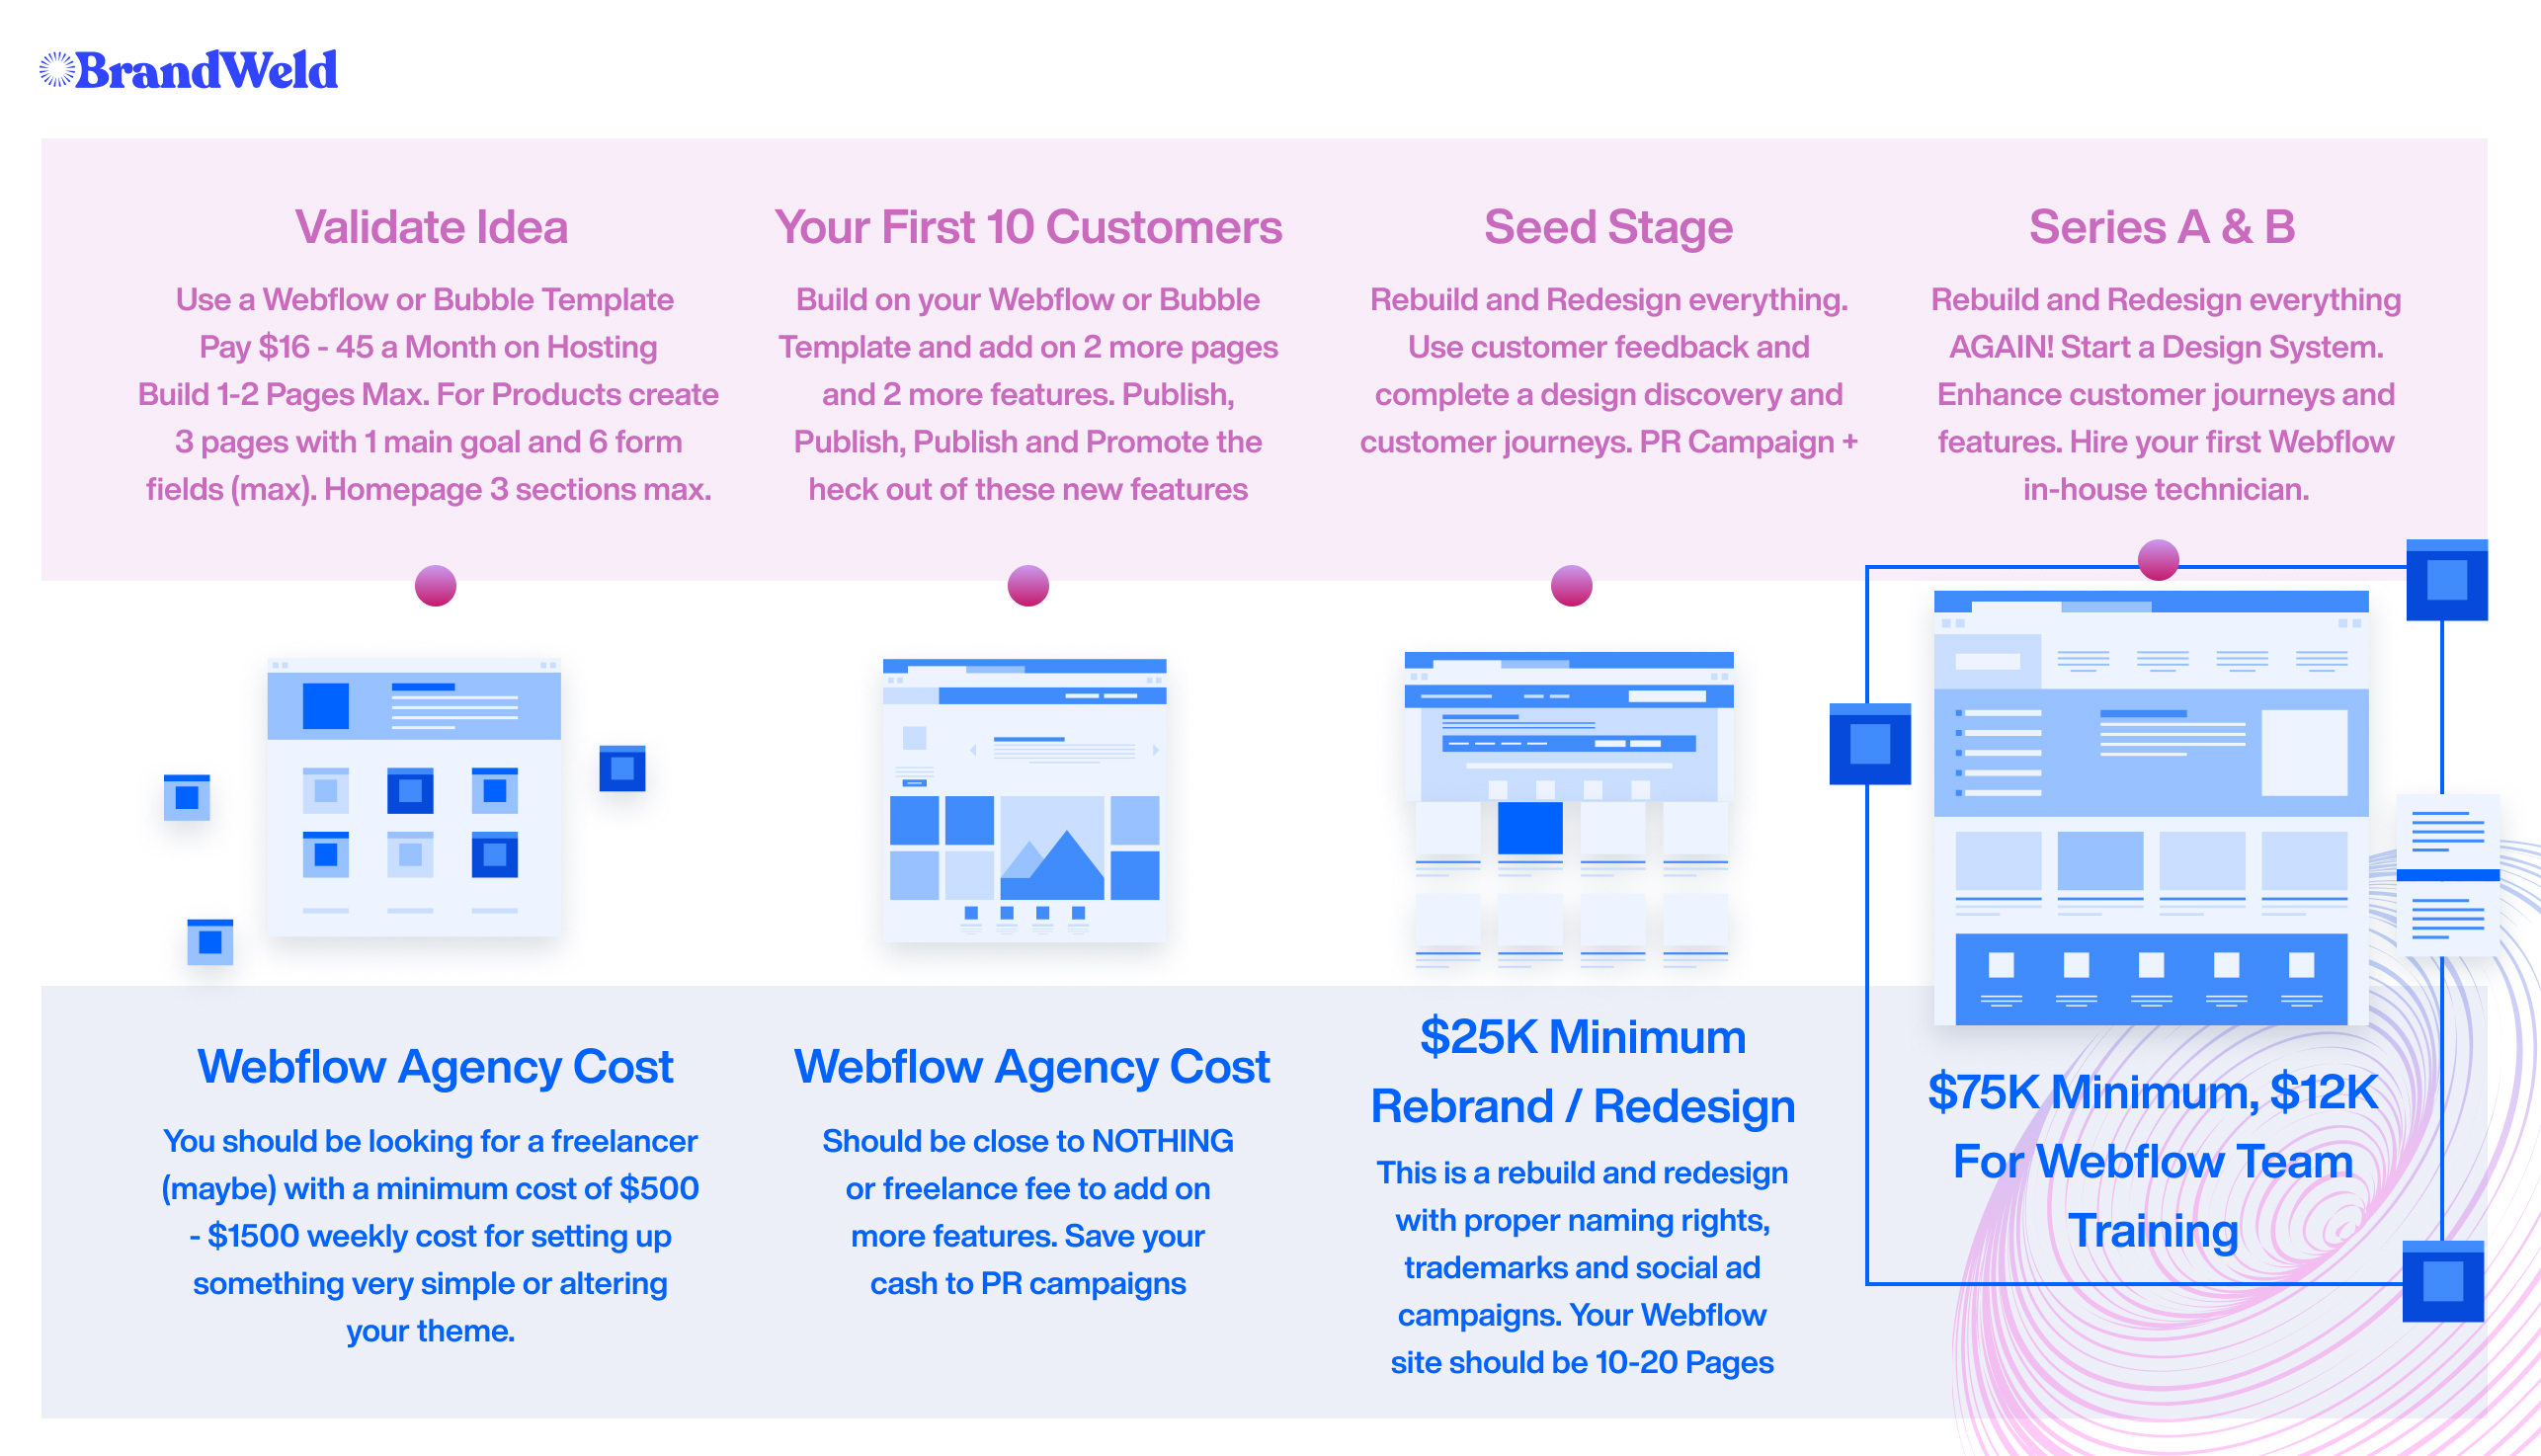 Your Webflow Site Cost at every stage of your Startup (The Master Short Guide)